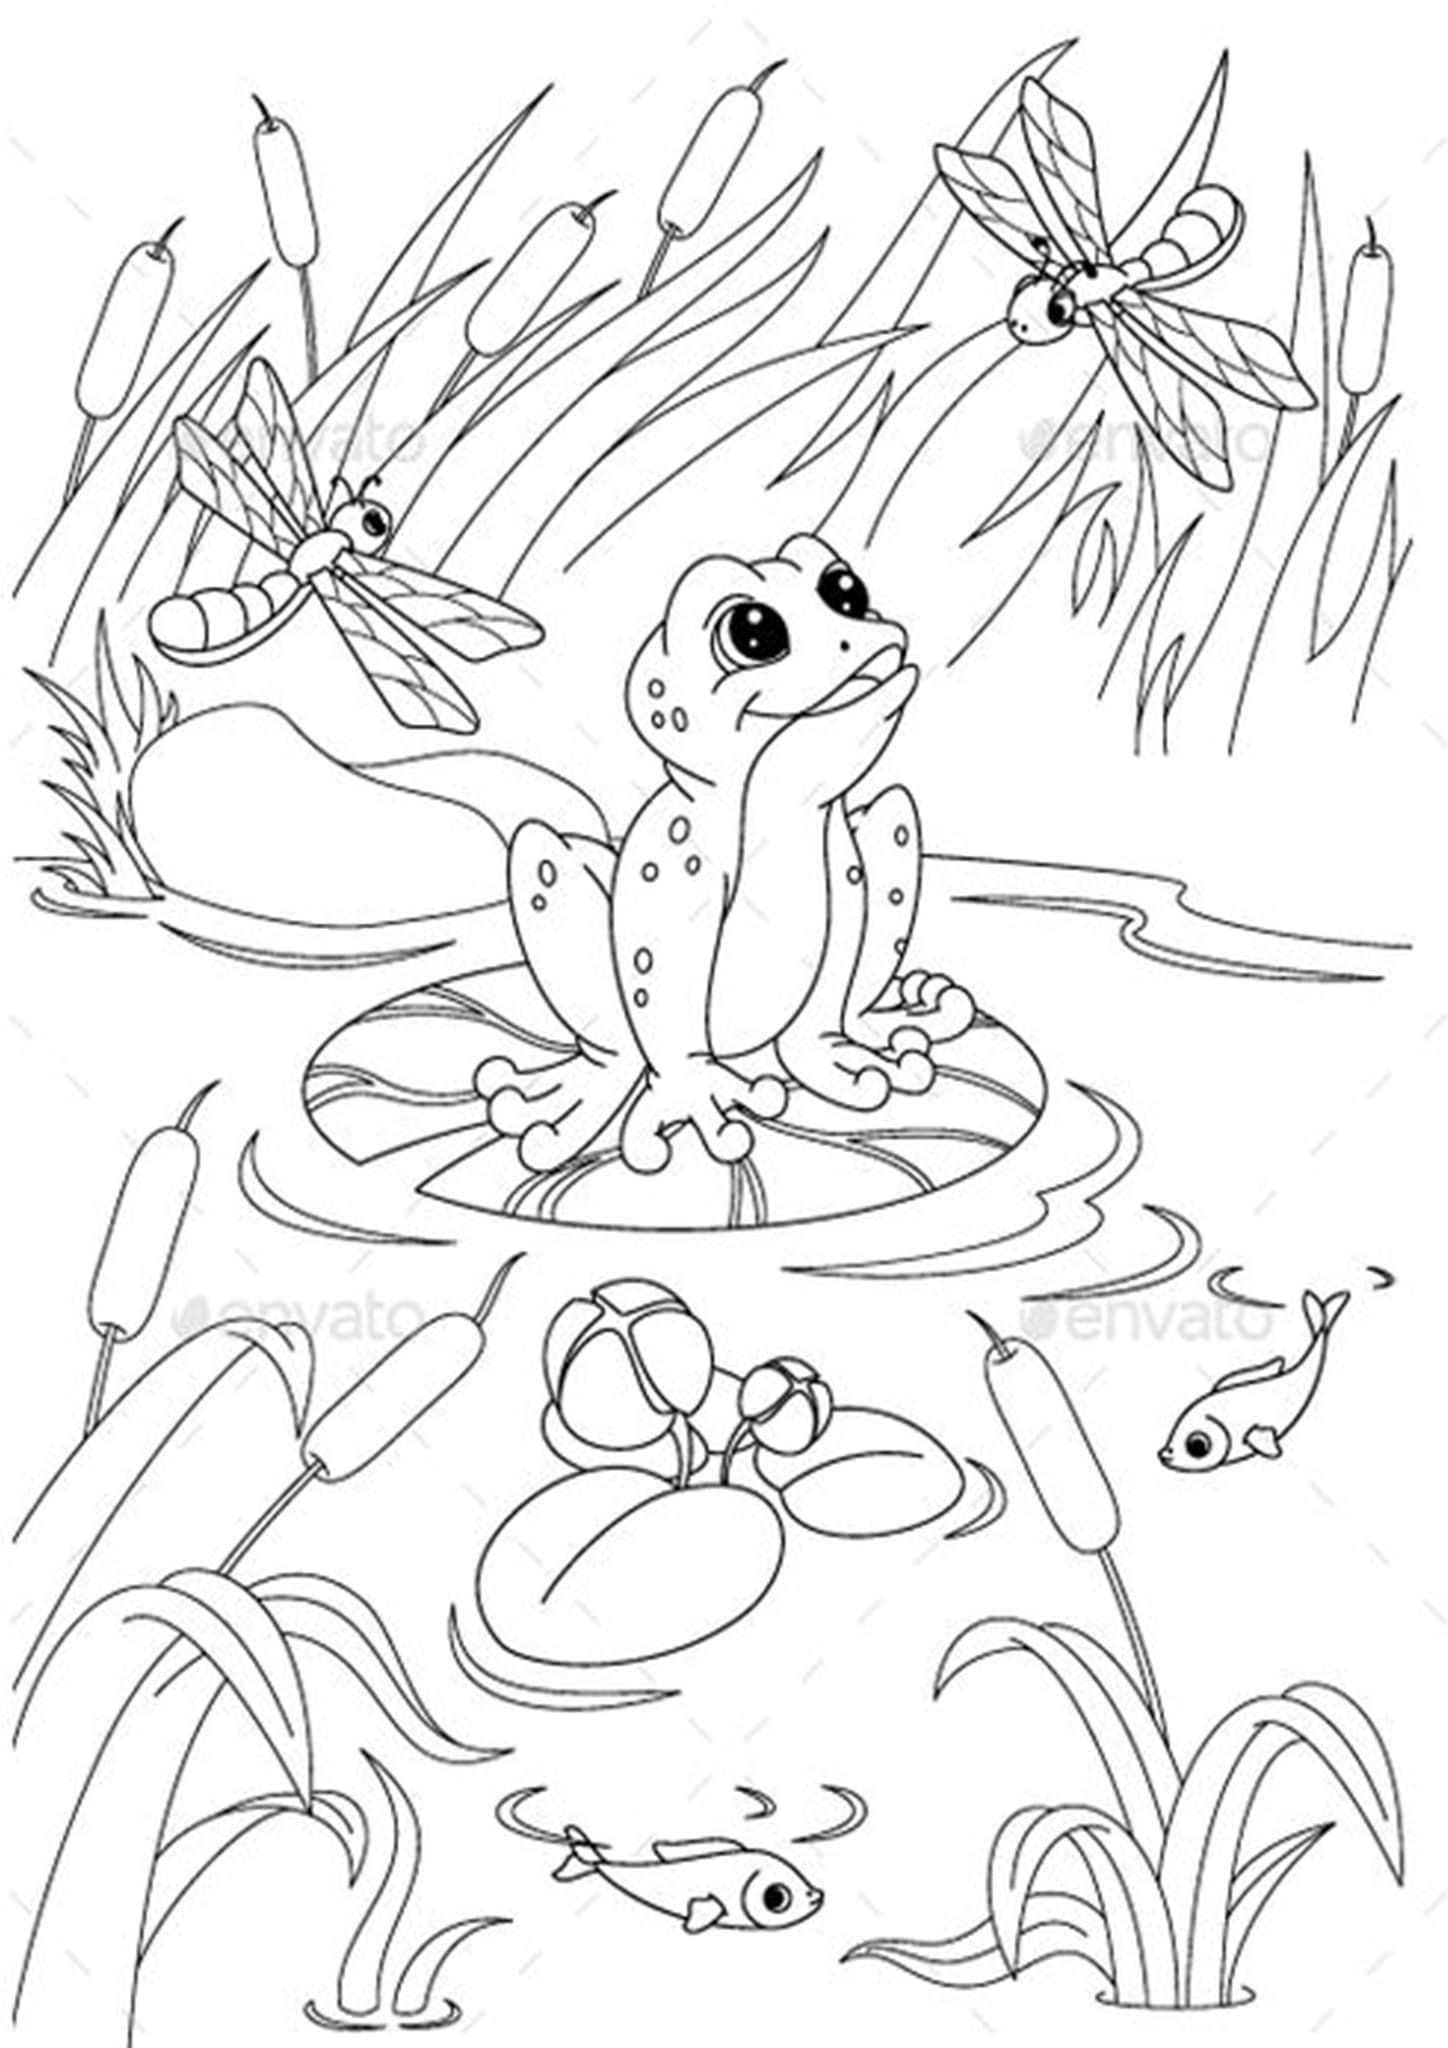 Free Easy To Print Frog Coloring Pages Frog Coloring Pages Animal Coloring Pages Pond Animals